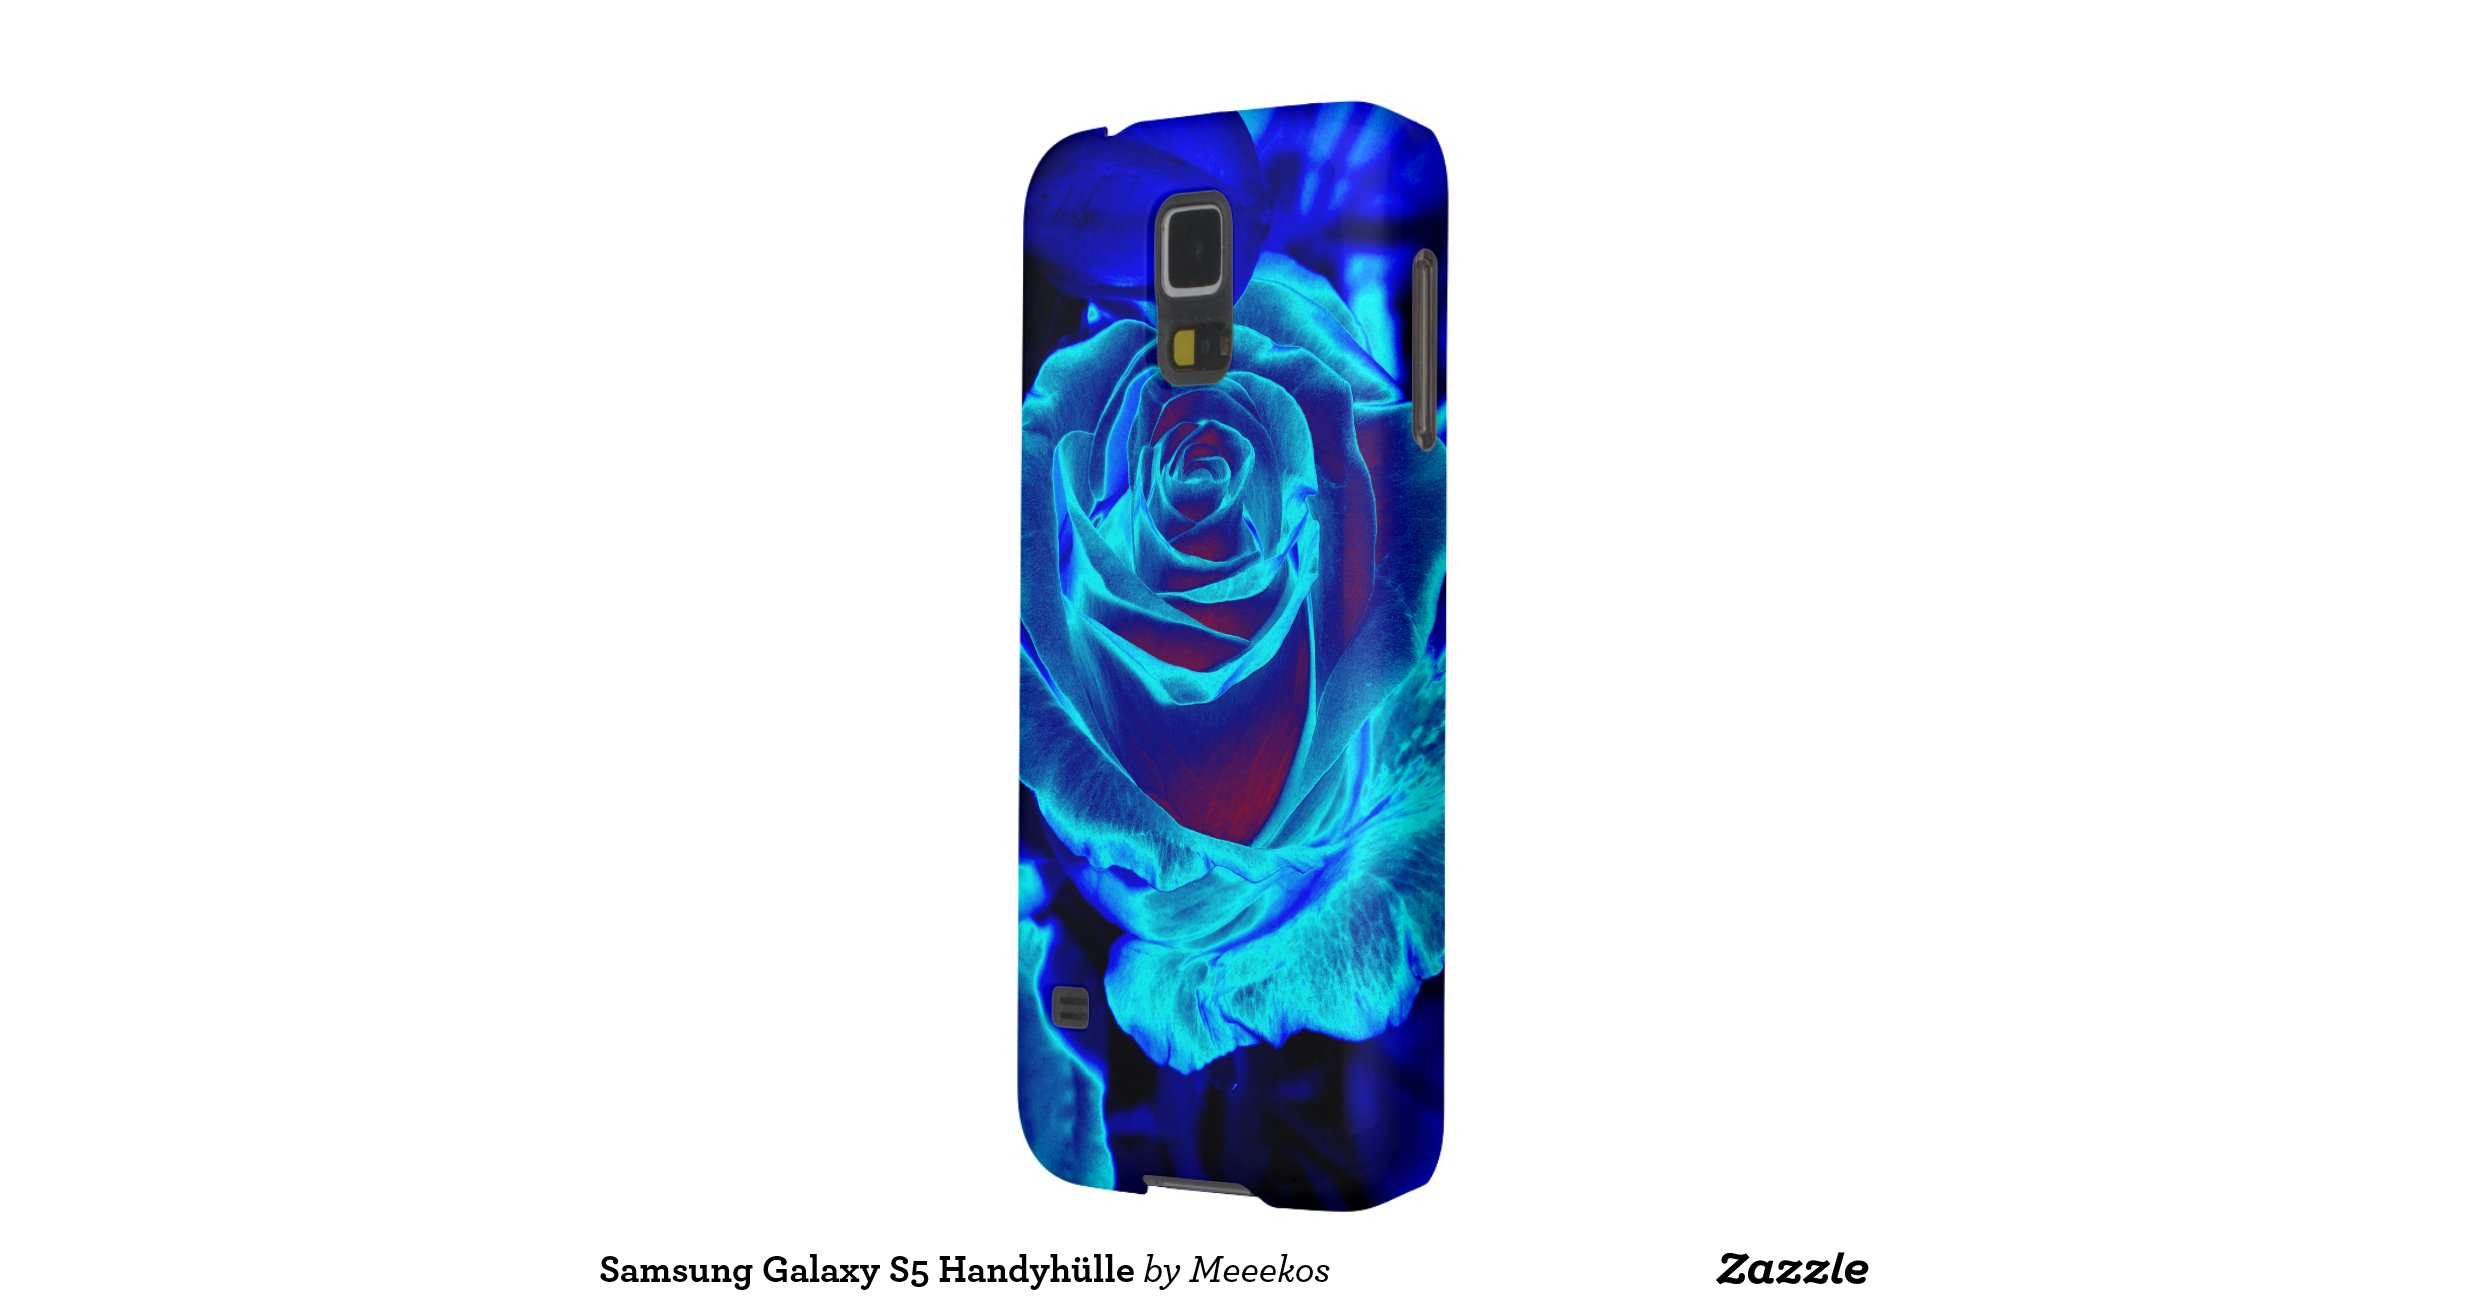 samsung galaxy s5 handyh lle galaxy s5 cases zazzle. Black Bedroom Furniture Sets. Home Design Ideas